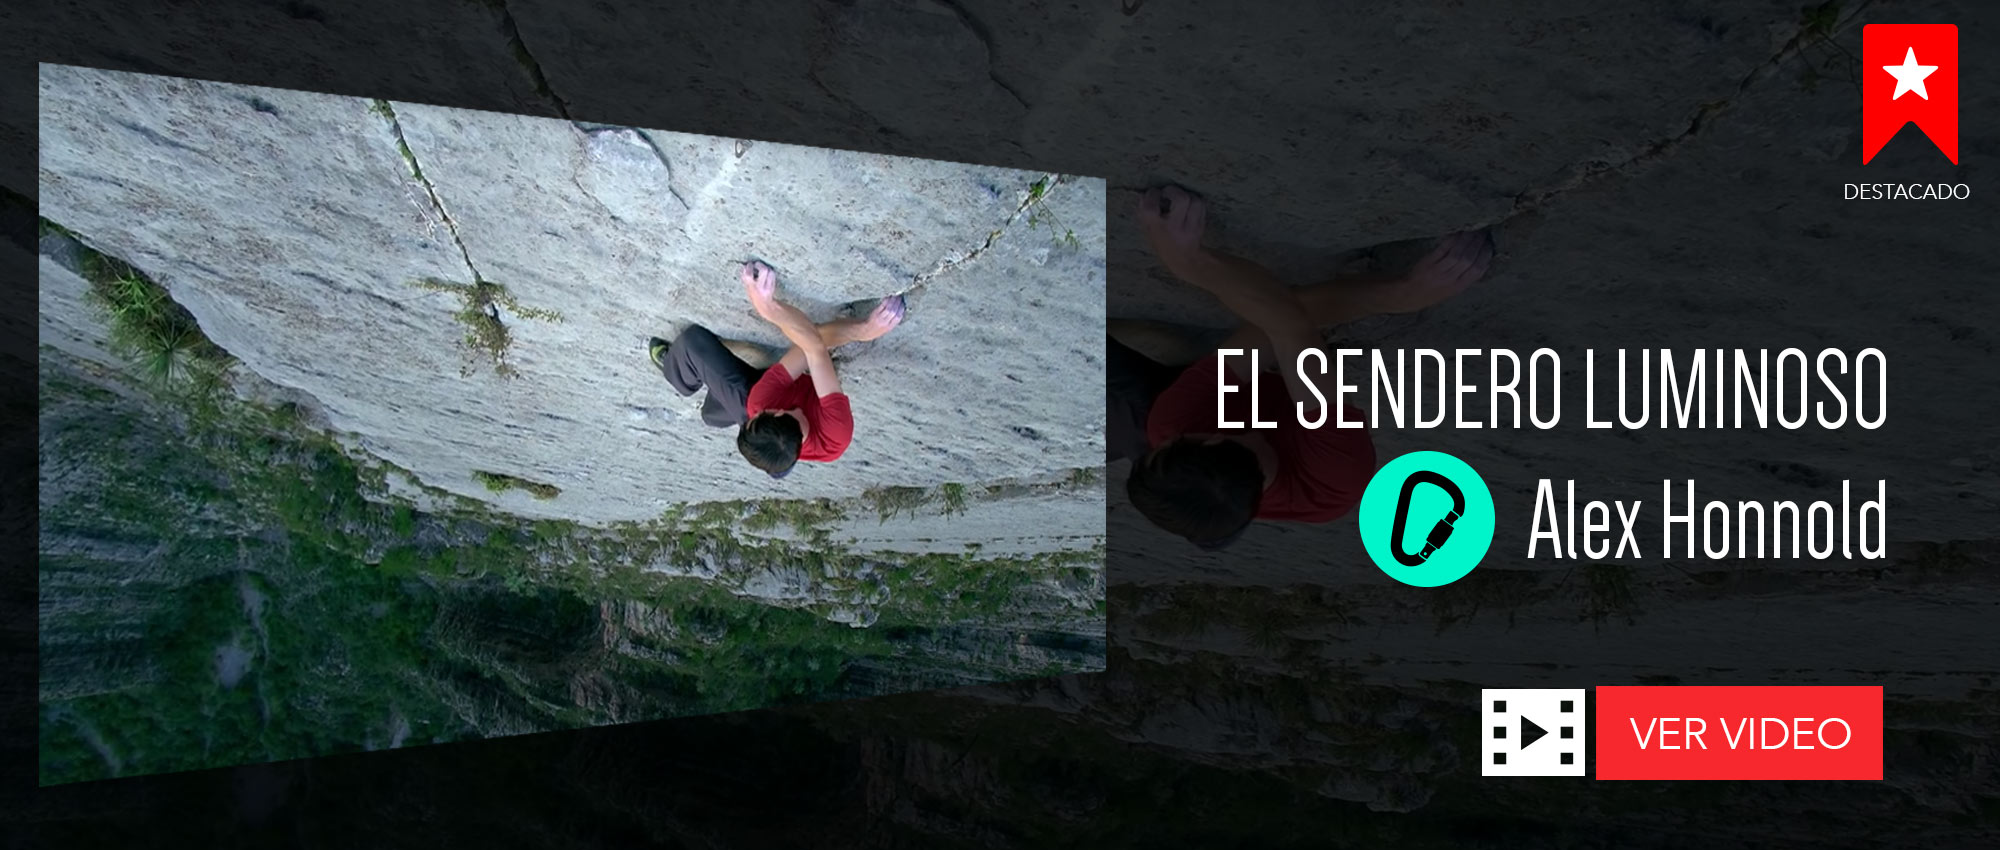 Movil Alex Honnold